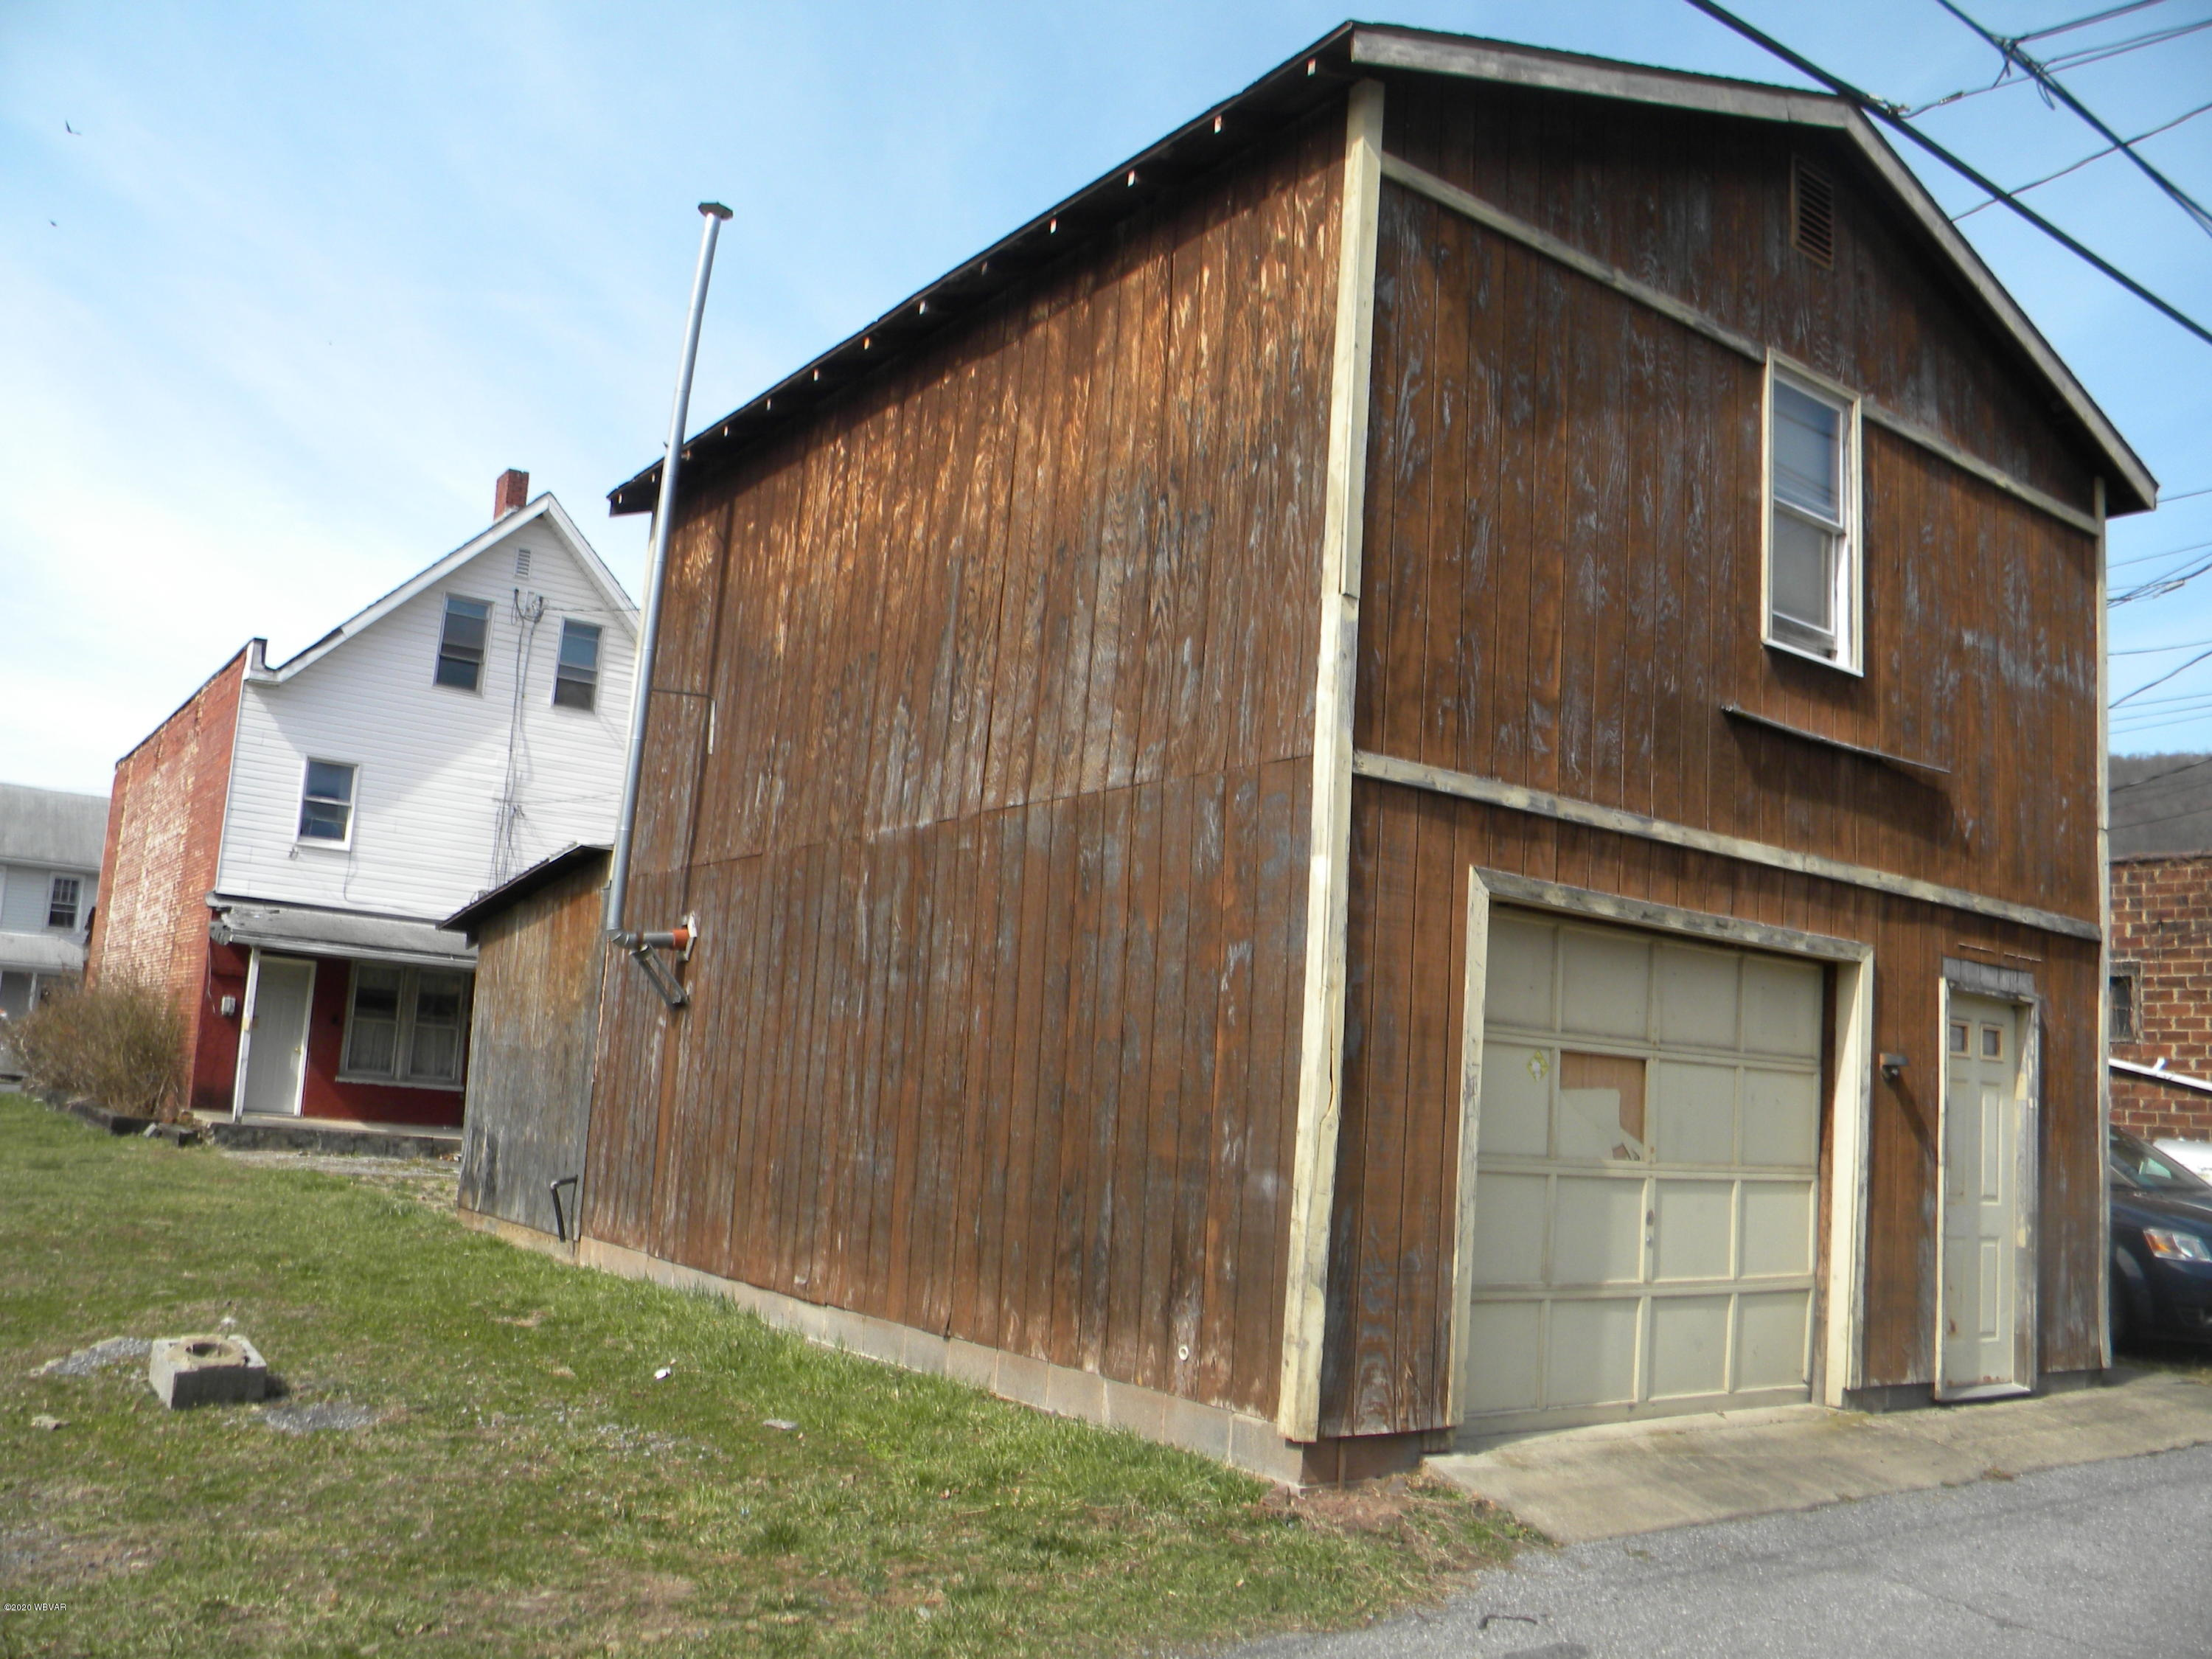 147 FIFTH STREET, Renovo, PA 17764, ,Multi-units,For sale,FIFTH,WB-89953